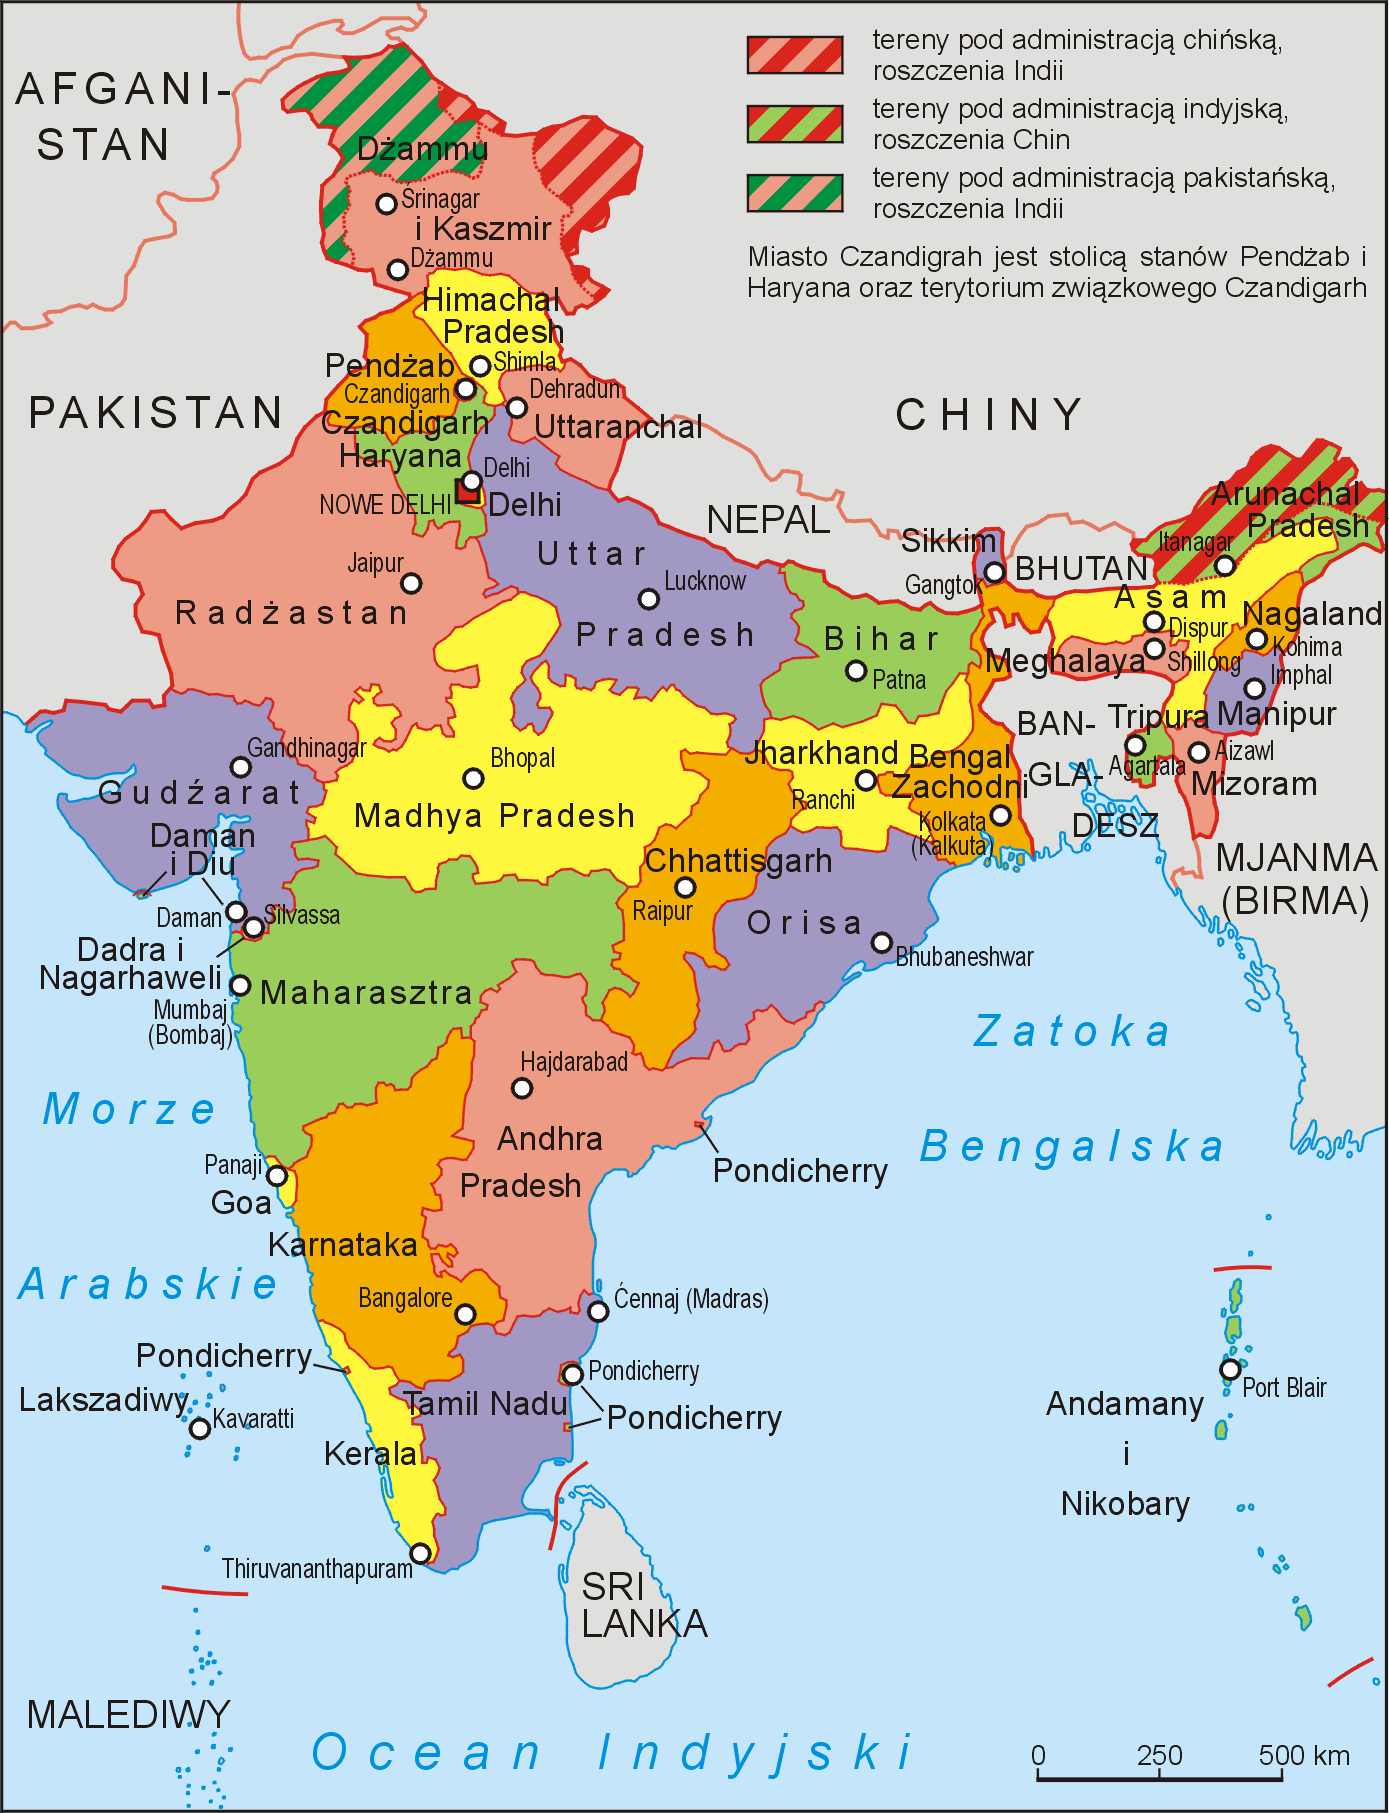 List of hospitals in India - Wikipedia